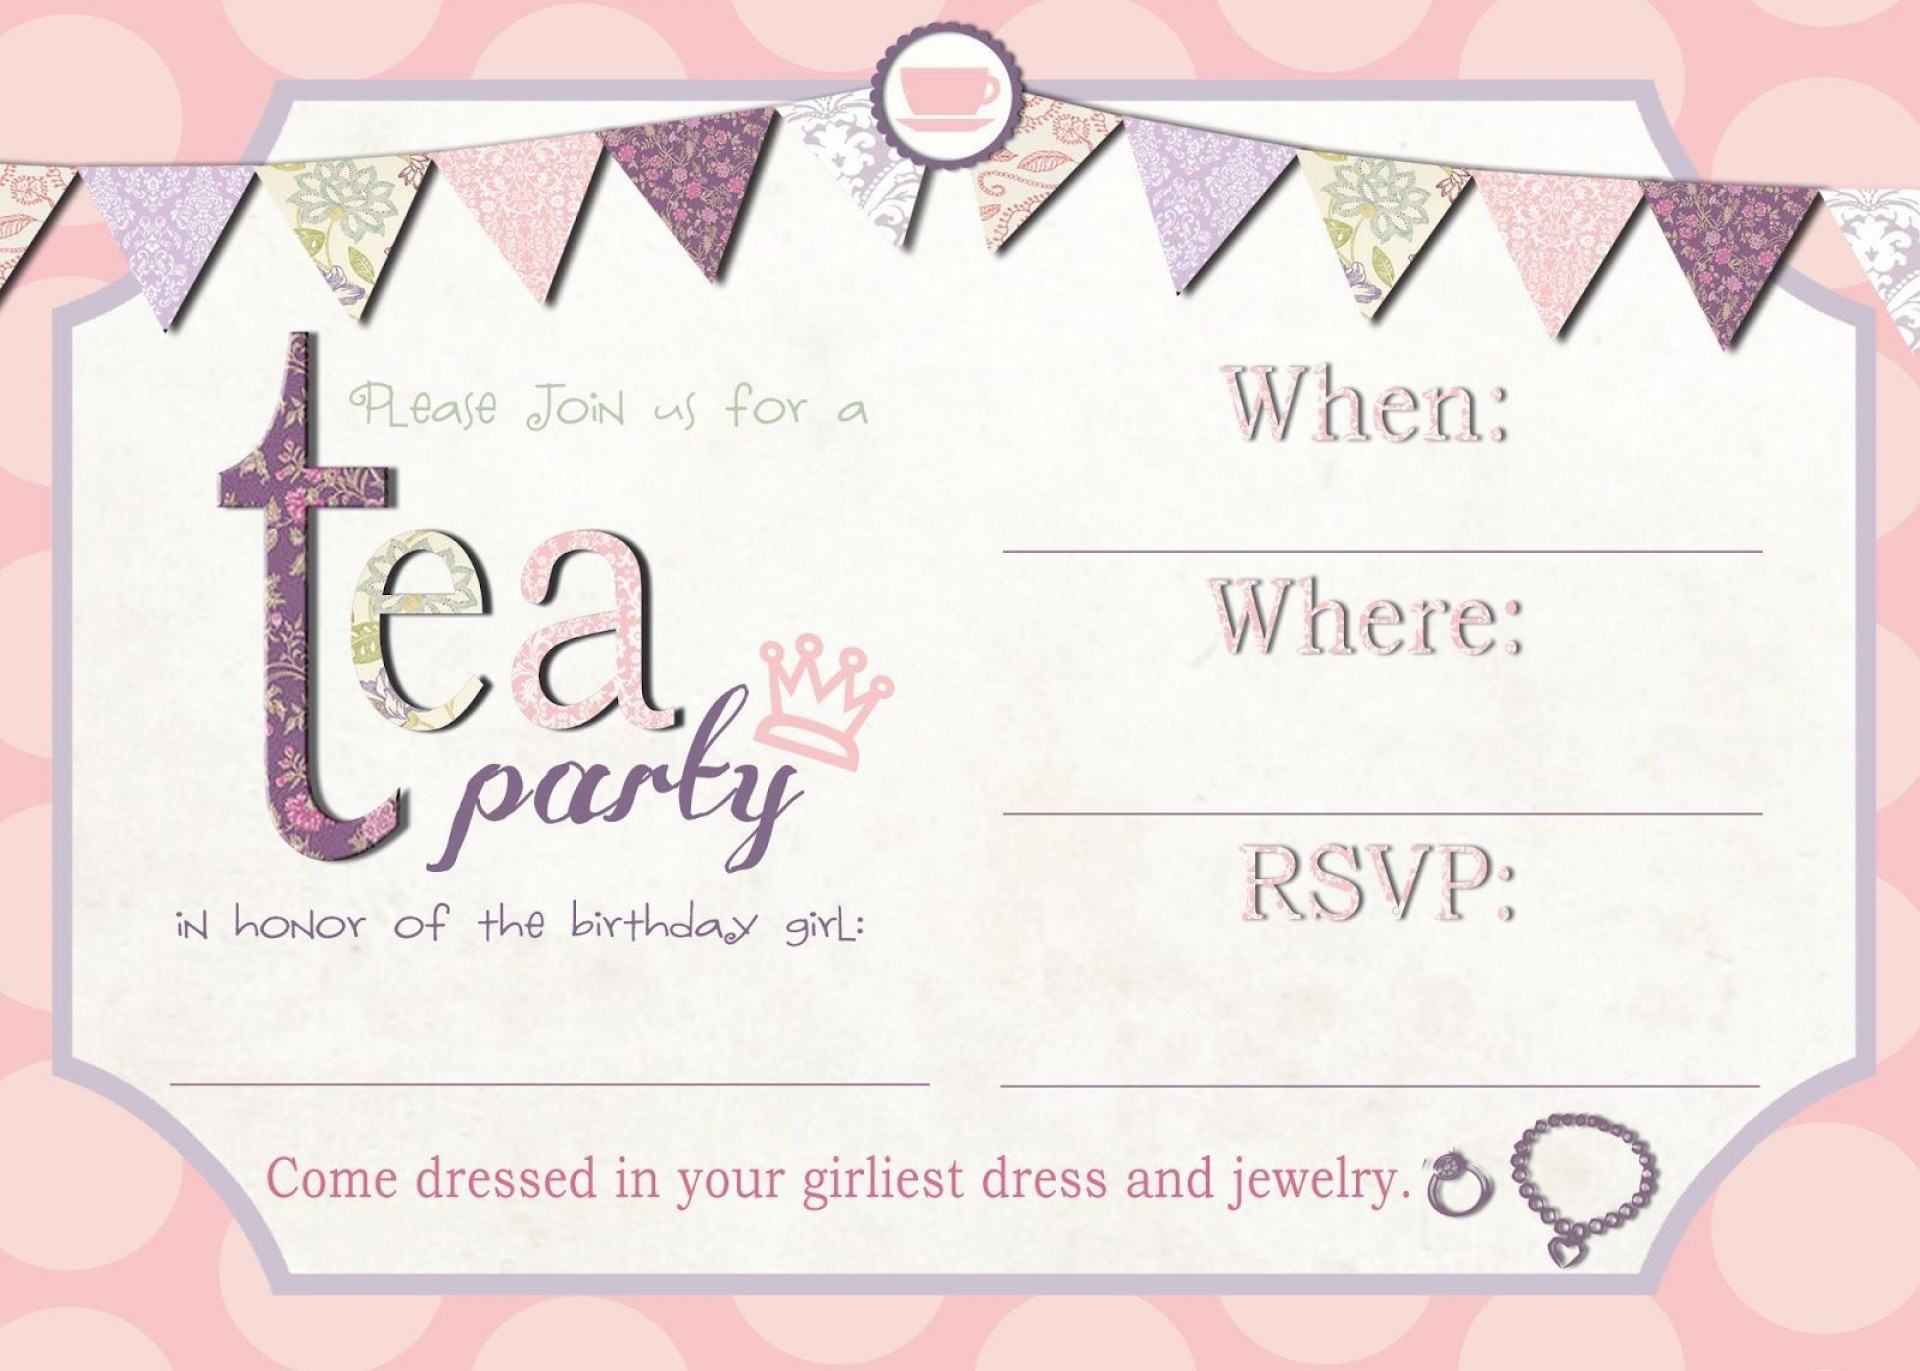 002 Astounding Tea Party Invitation Template Free Sample  Vintage Princes Printable1920